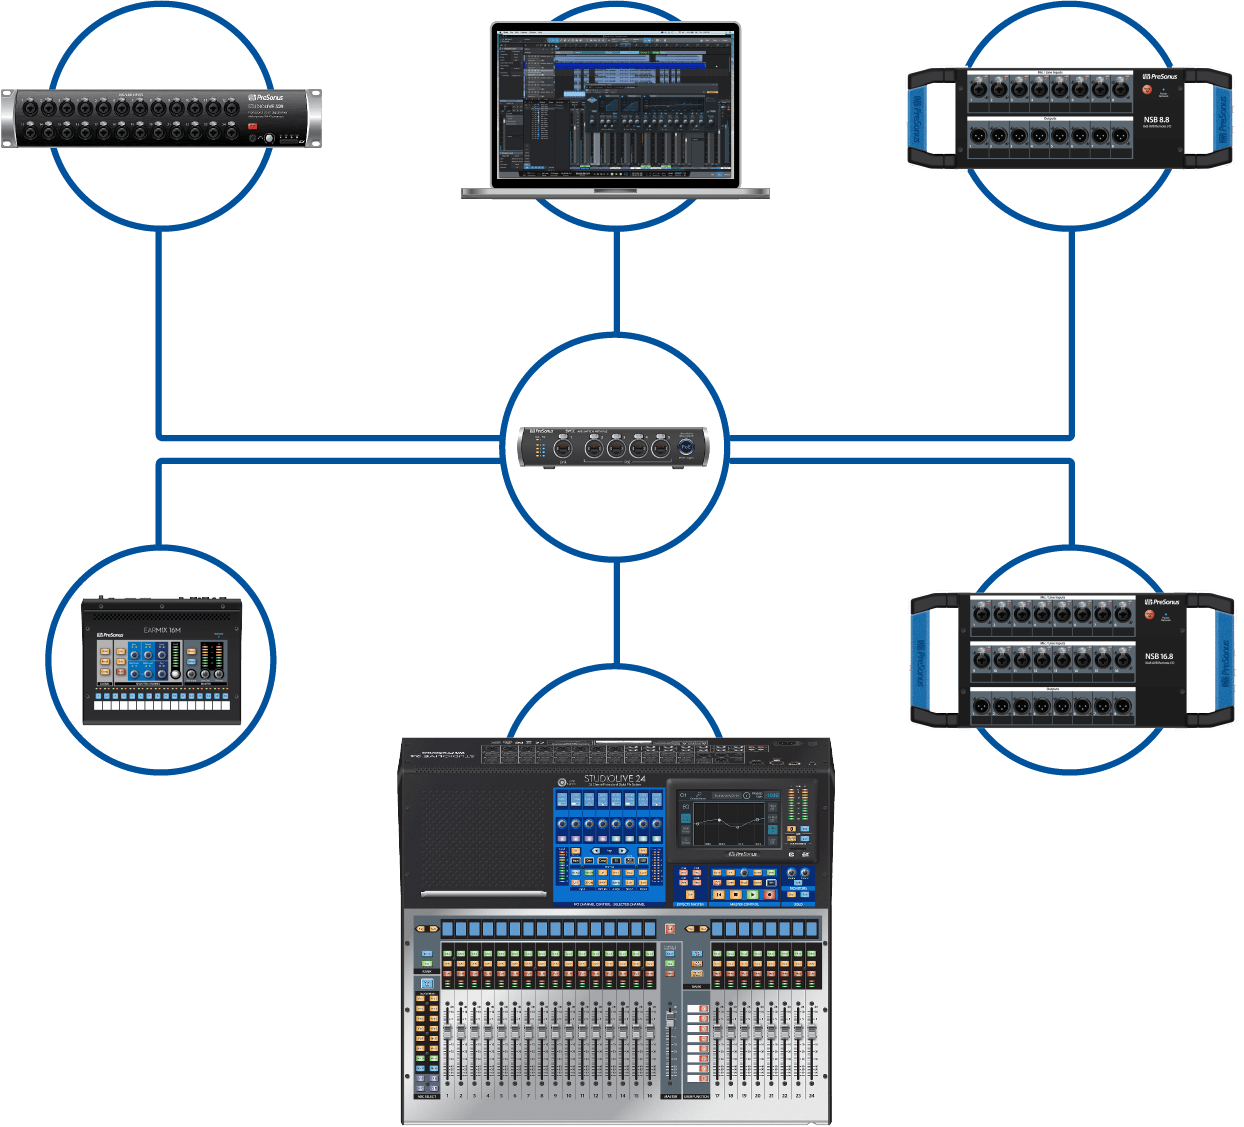 hight resolution of remote control over wireless lan networks proprietary audio over ethernet protocols